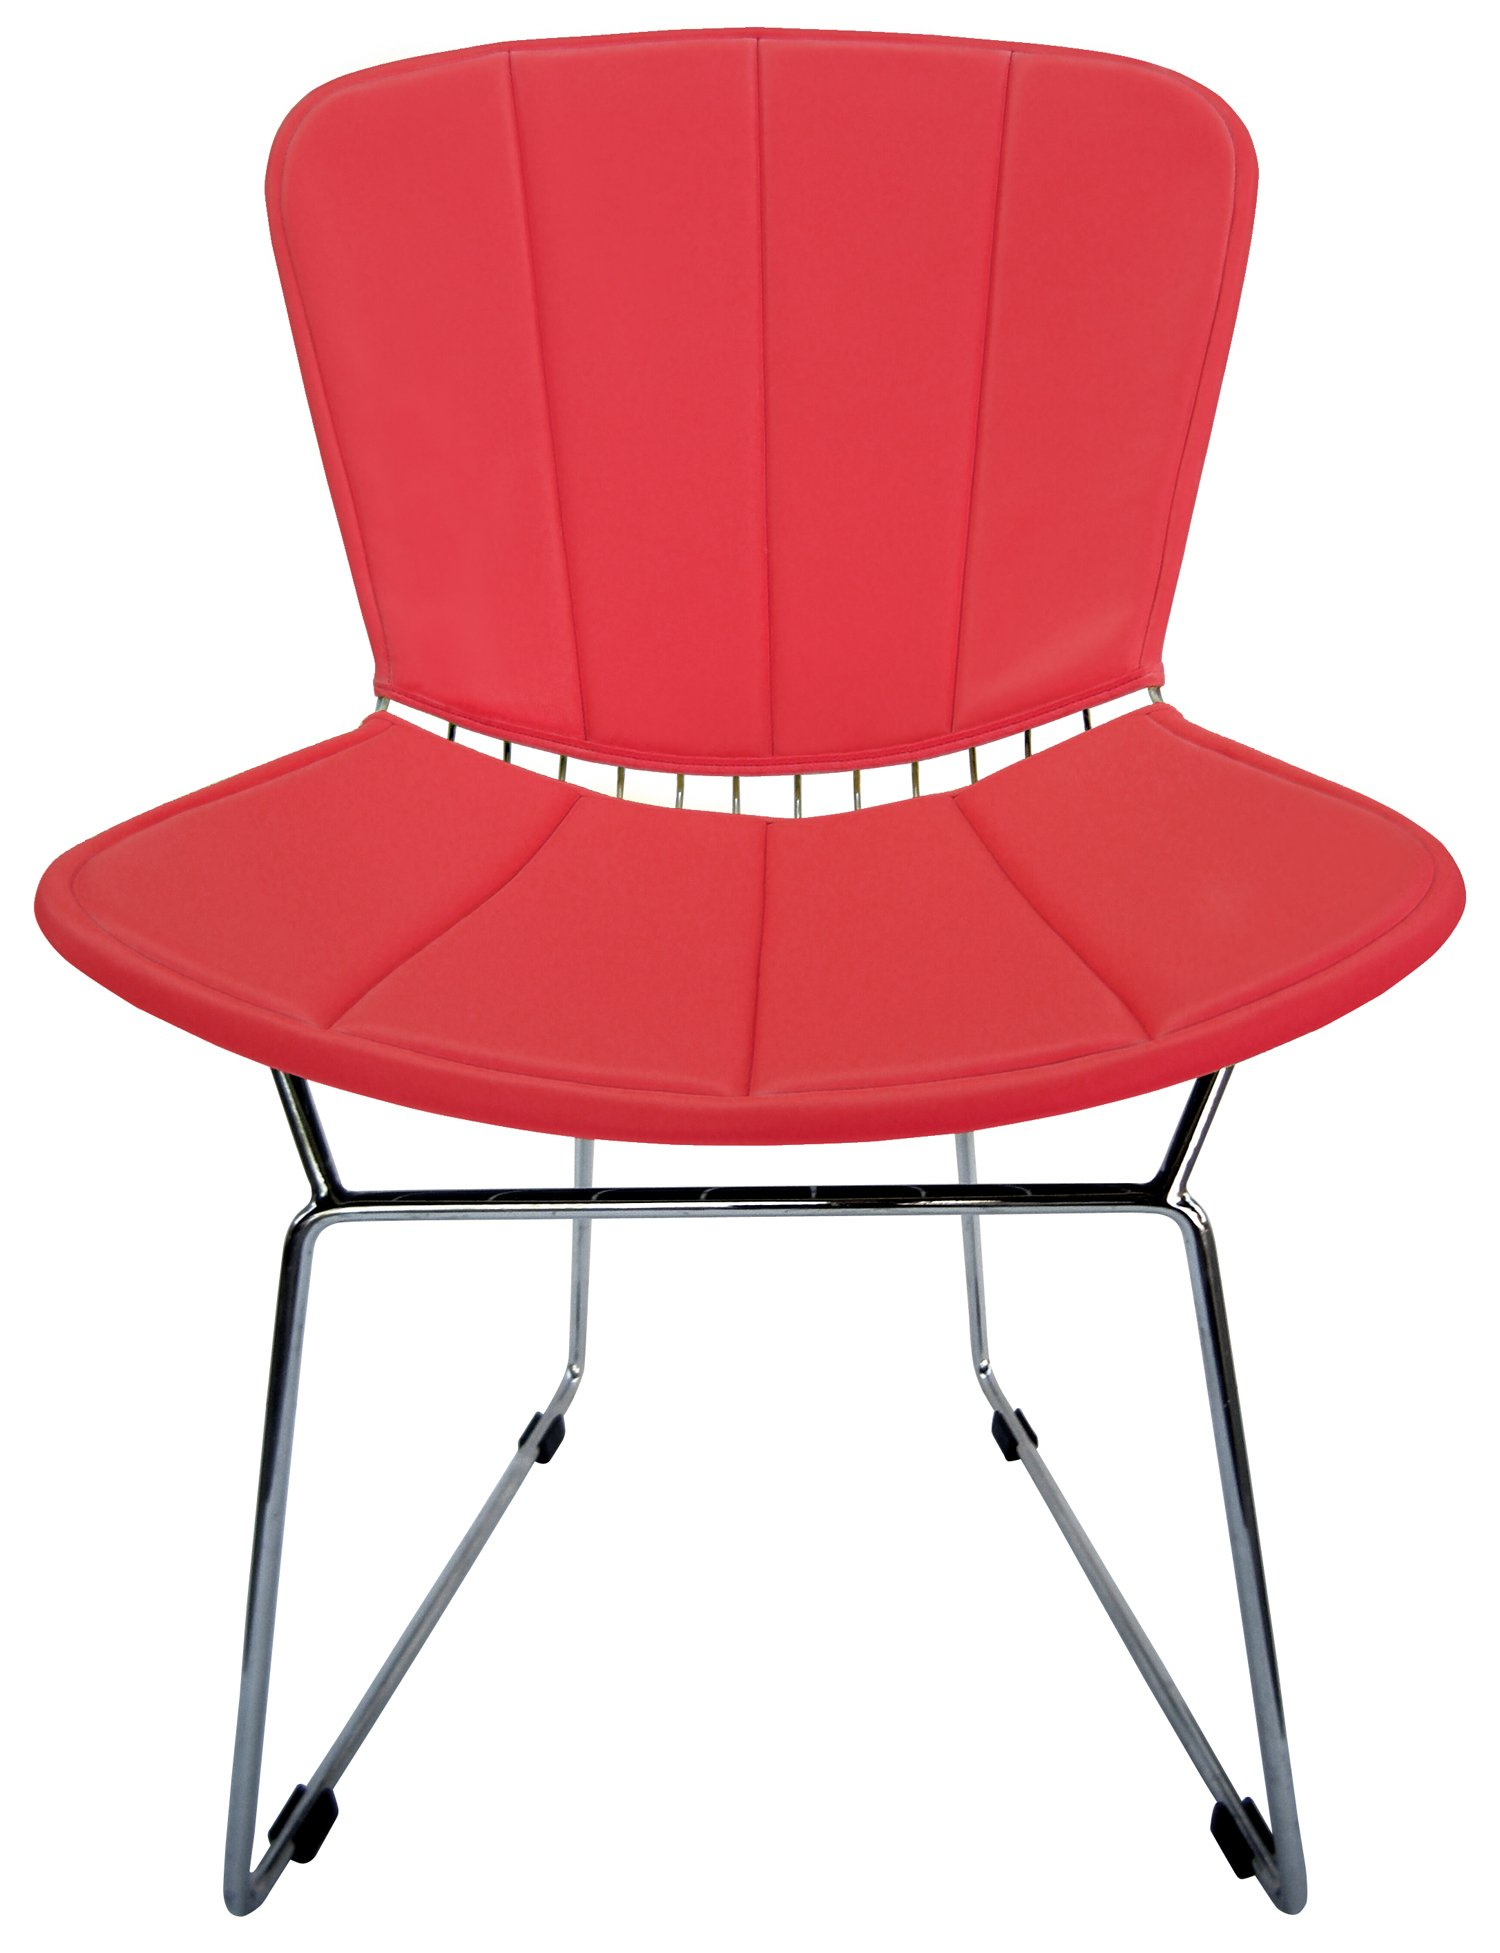 Full Cushion and Back Pad for Bertoia Side Chair - Vinyl - Fits Original or Reproductions (Red) by Walbea Retro